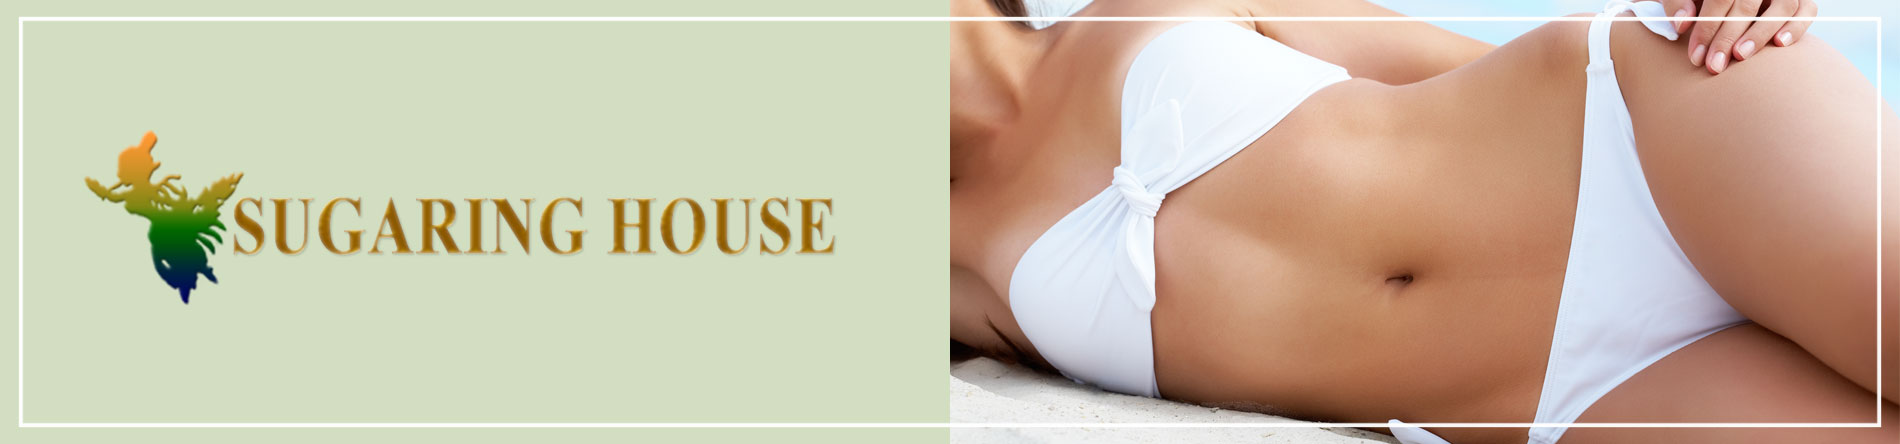 Sugaring House Spas is a Beauty Spa in Ashburn, VA